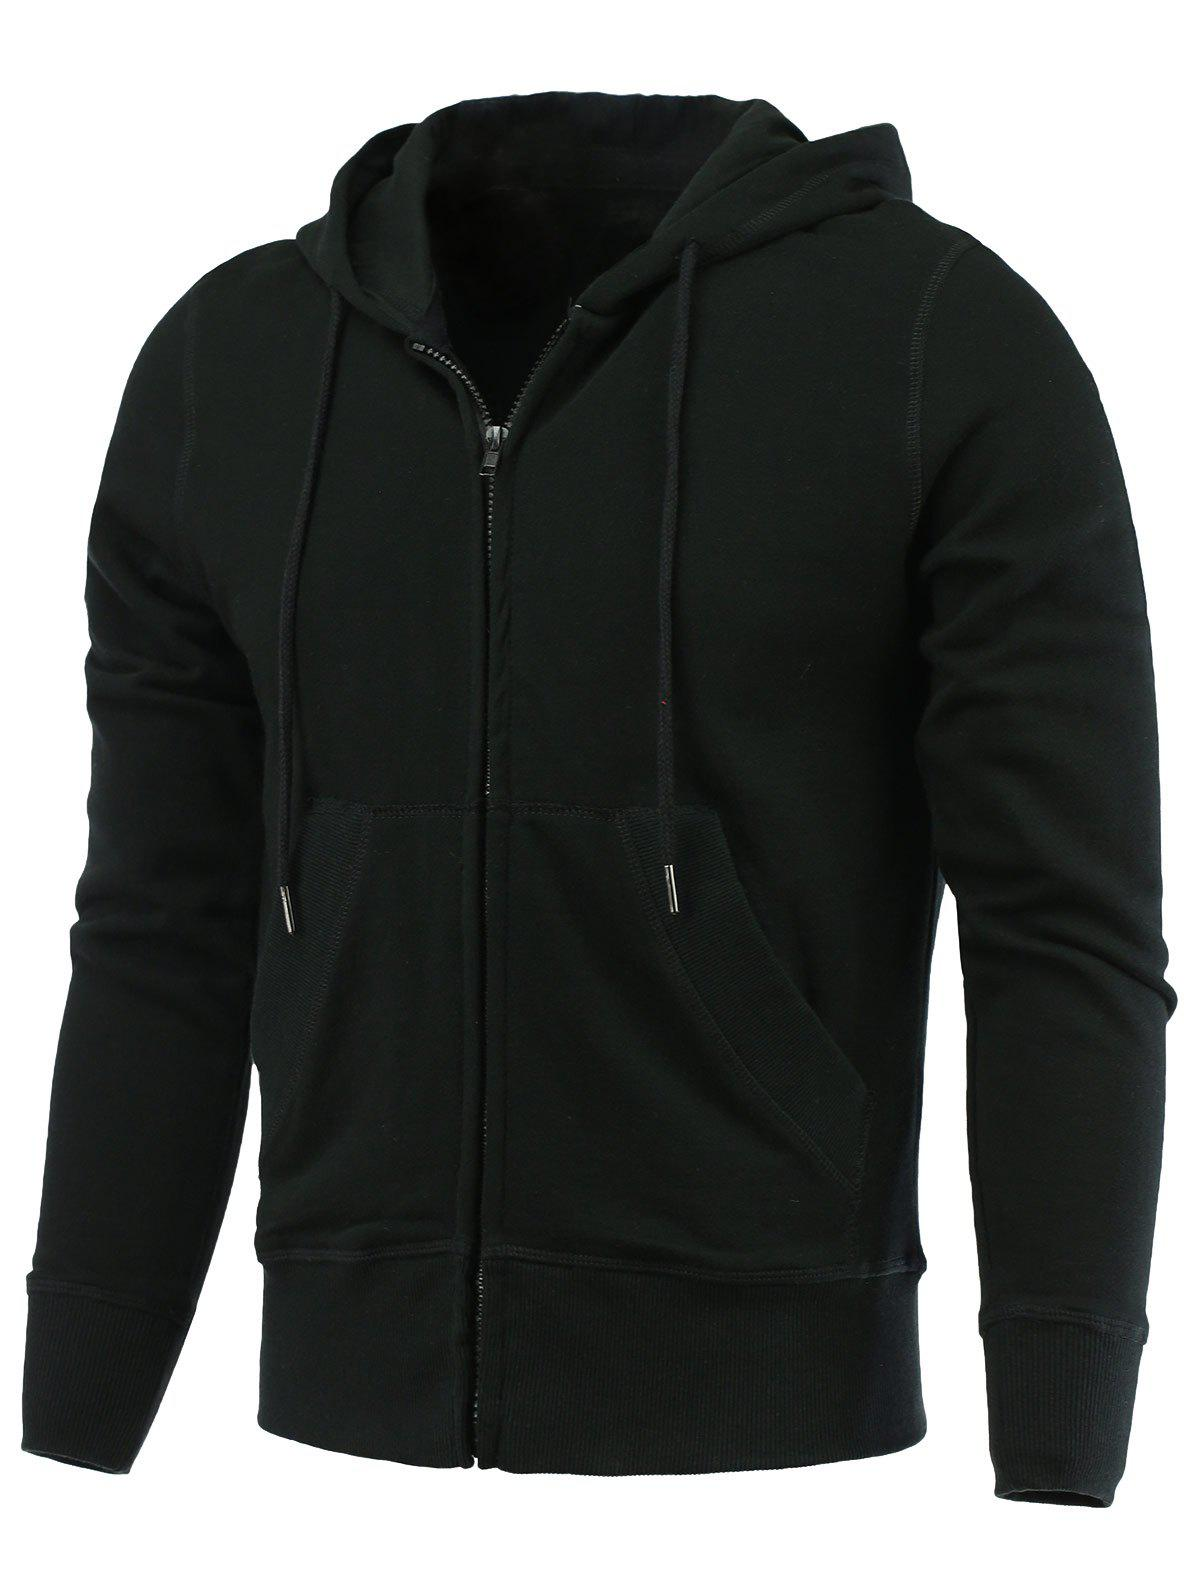 Solide Long Couleur capuche ample Zip-Up Hoodie - Noir S